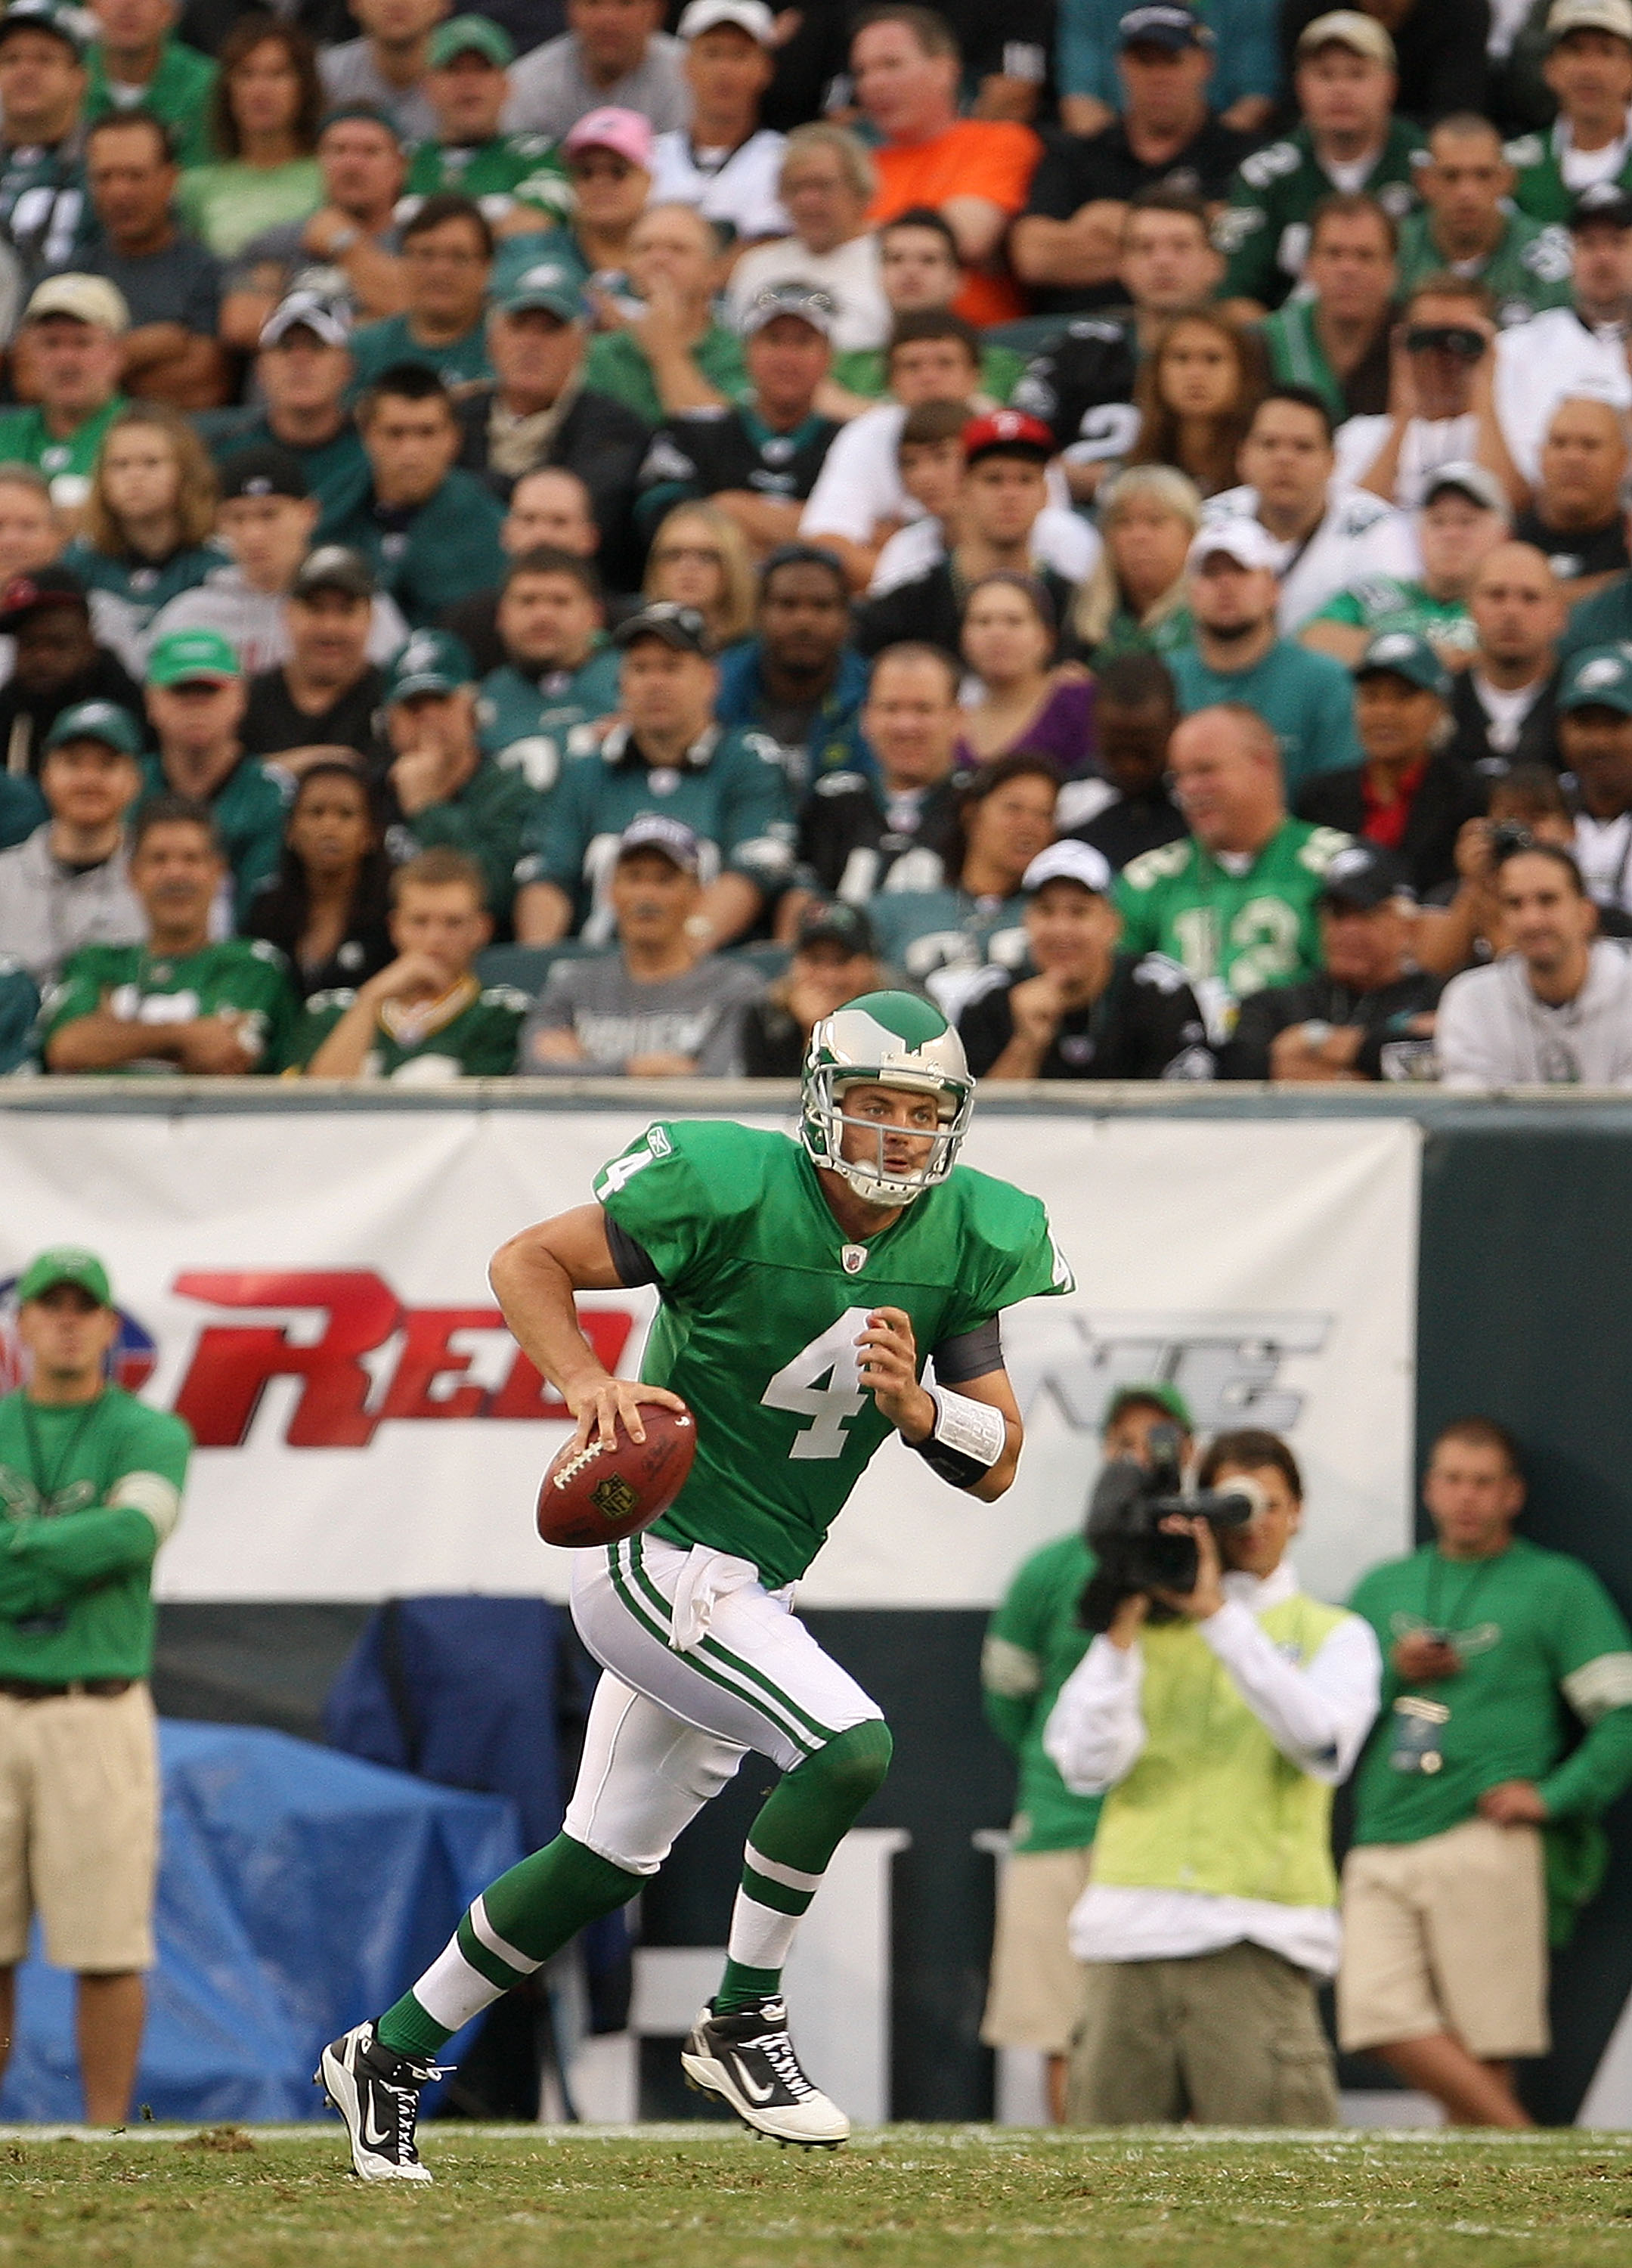 PHILADELPHIA - SEPTEMBER 12:  Kevin Kolb #4 of the Philadelphia Eagles looks to throw a pass during a game against the Green Bay Packers at Lincoln Financial Field on September 12, 2010 in Philadelphia, Pennsylvania.  (Photo by Mike Ehrmann/Getty Images)